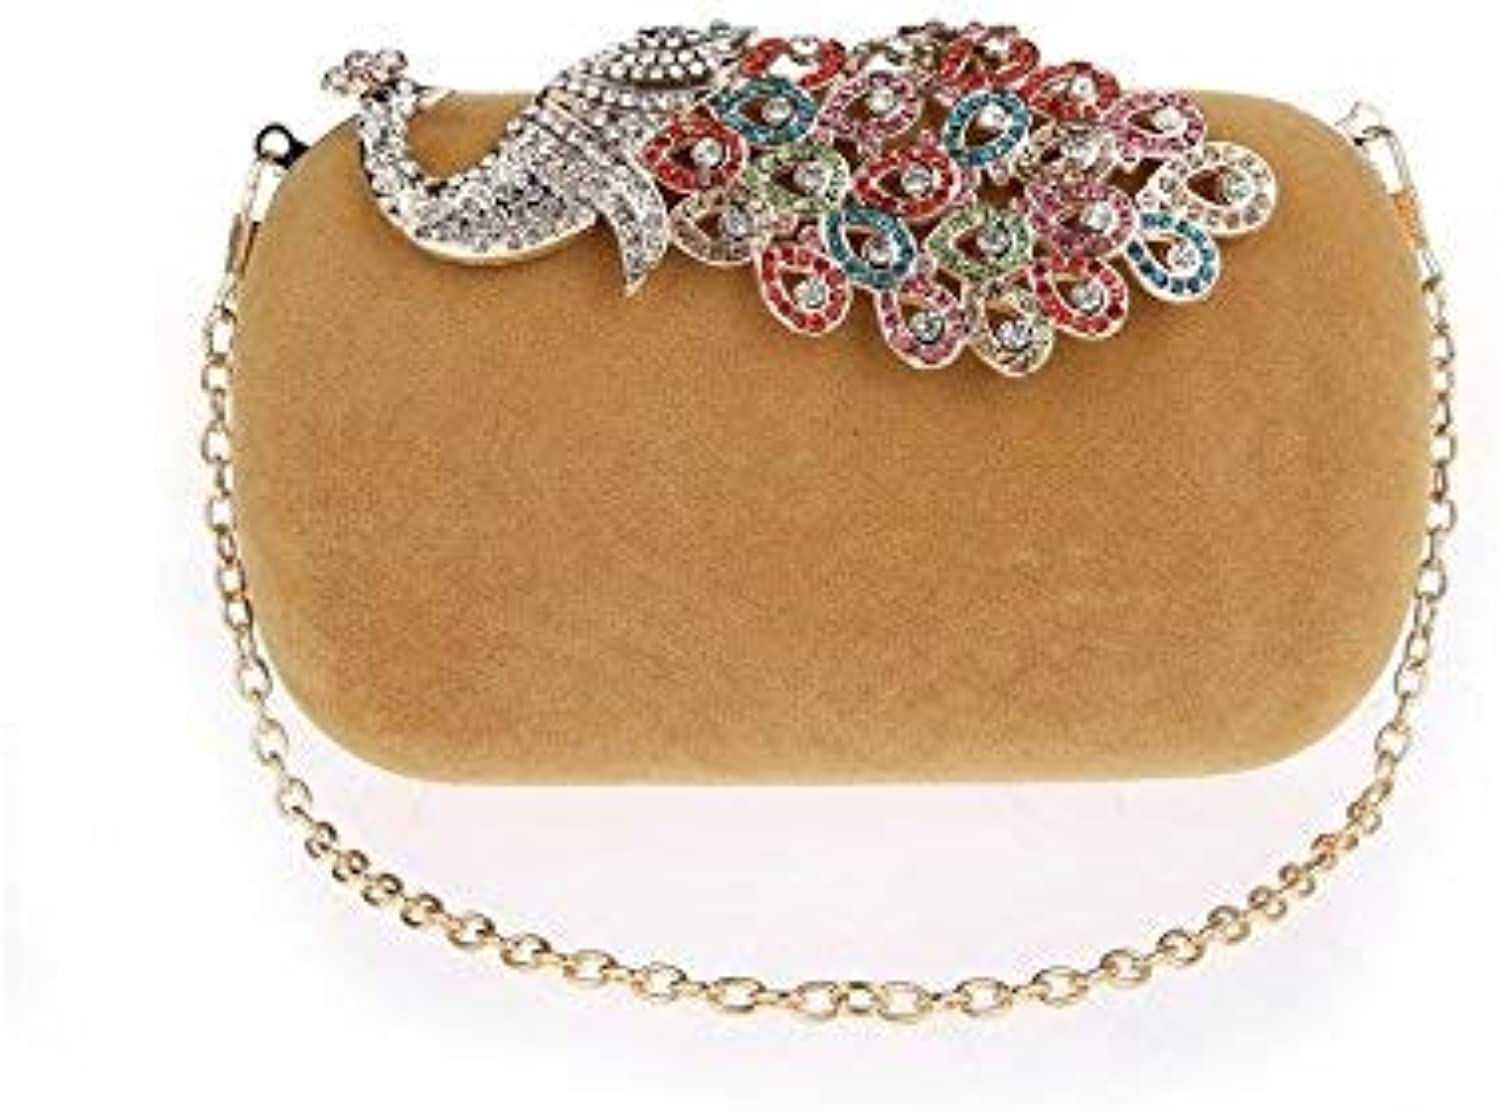 Ladies Handbag Hands Package Dinner Package Peacock Bag Hand Bag Ladies Handbags, Cross-Party-Style Small-Package Document Bag (color   Beige)